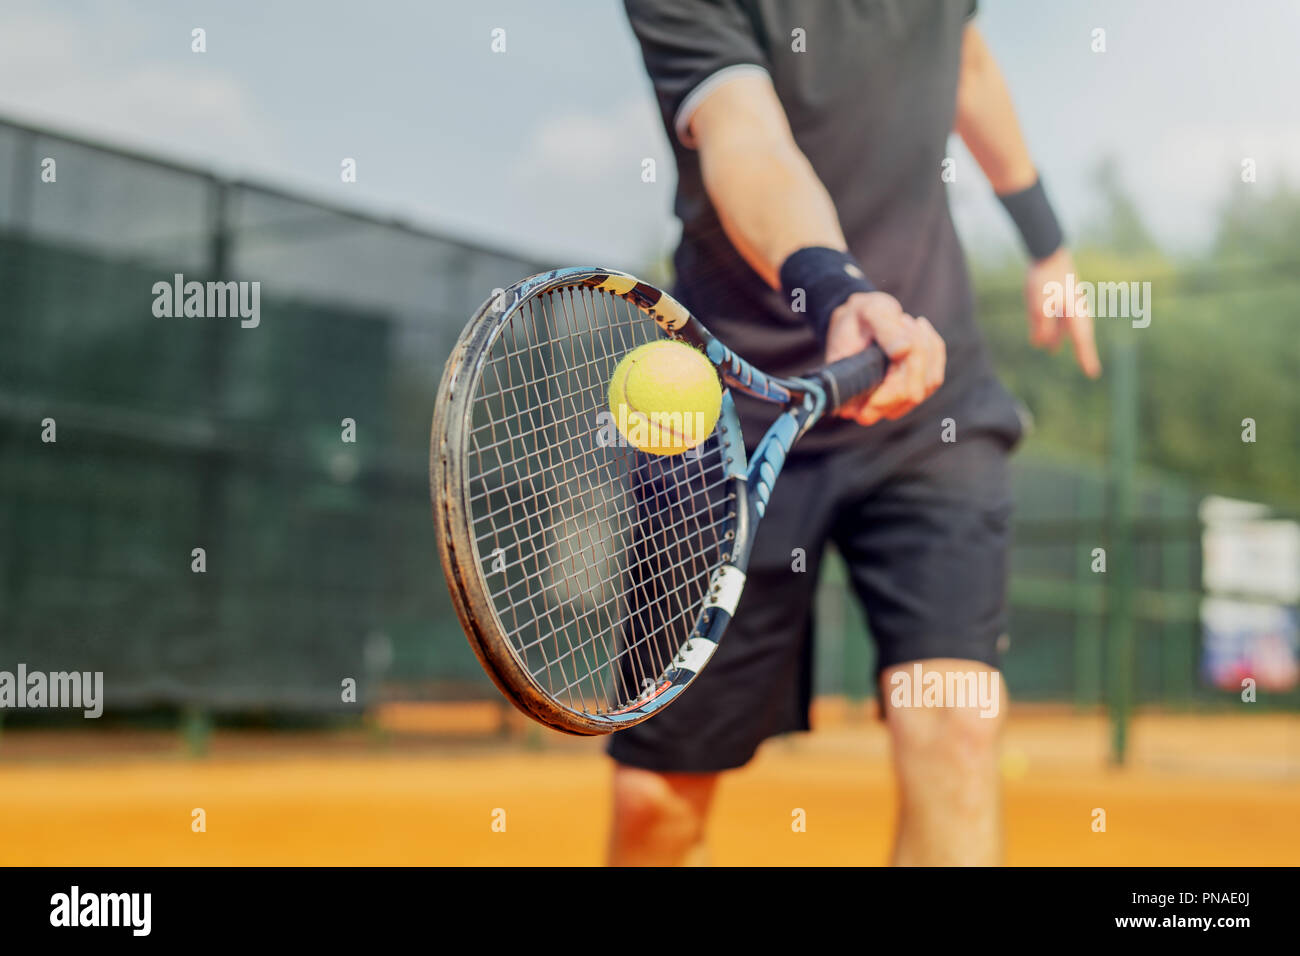 Close up of young attractive man playing tennis at tennis court and beating the ball with a racket. Player is hitting ball with racket while playing m - Stock Image